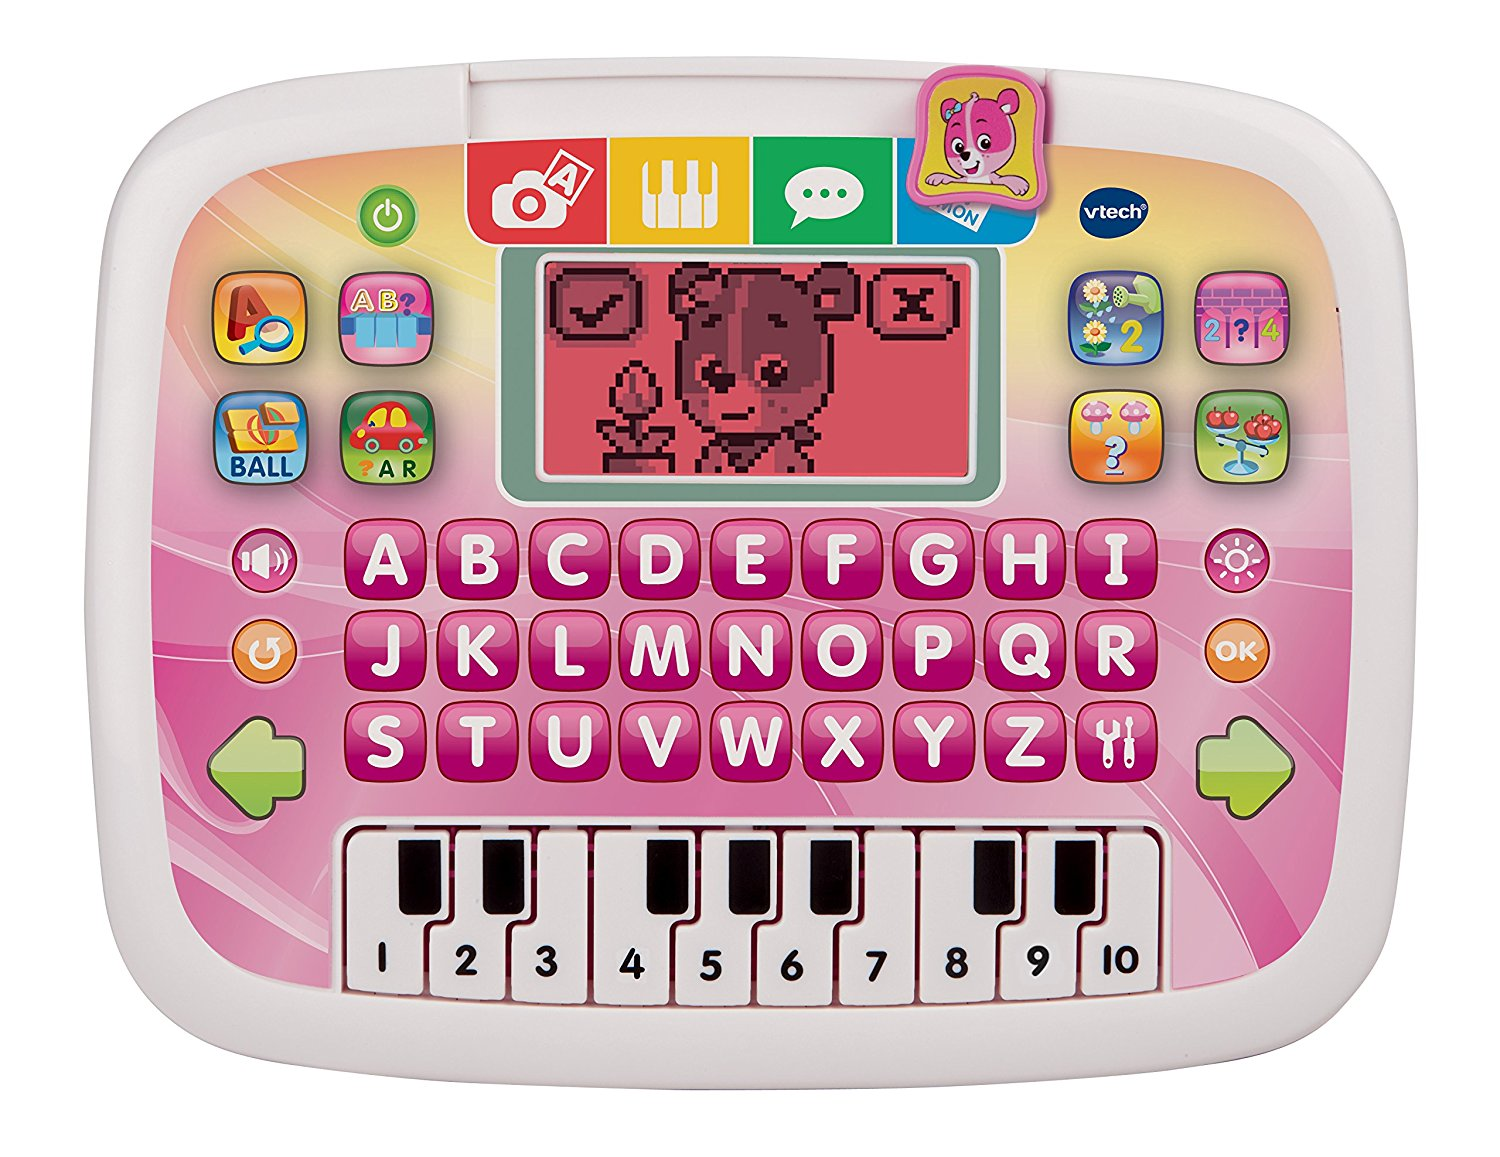 Little Apps Tablet, Pink By VTech Ship from US by